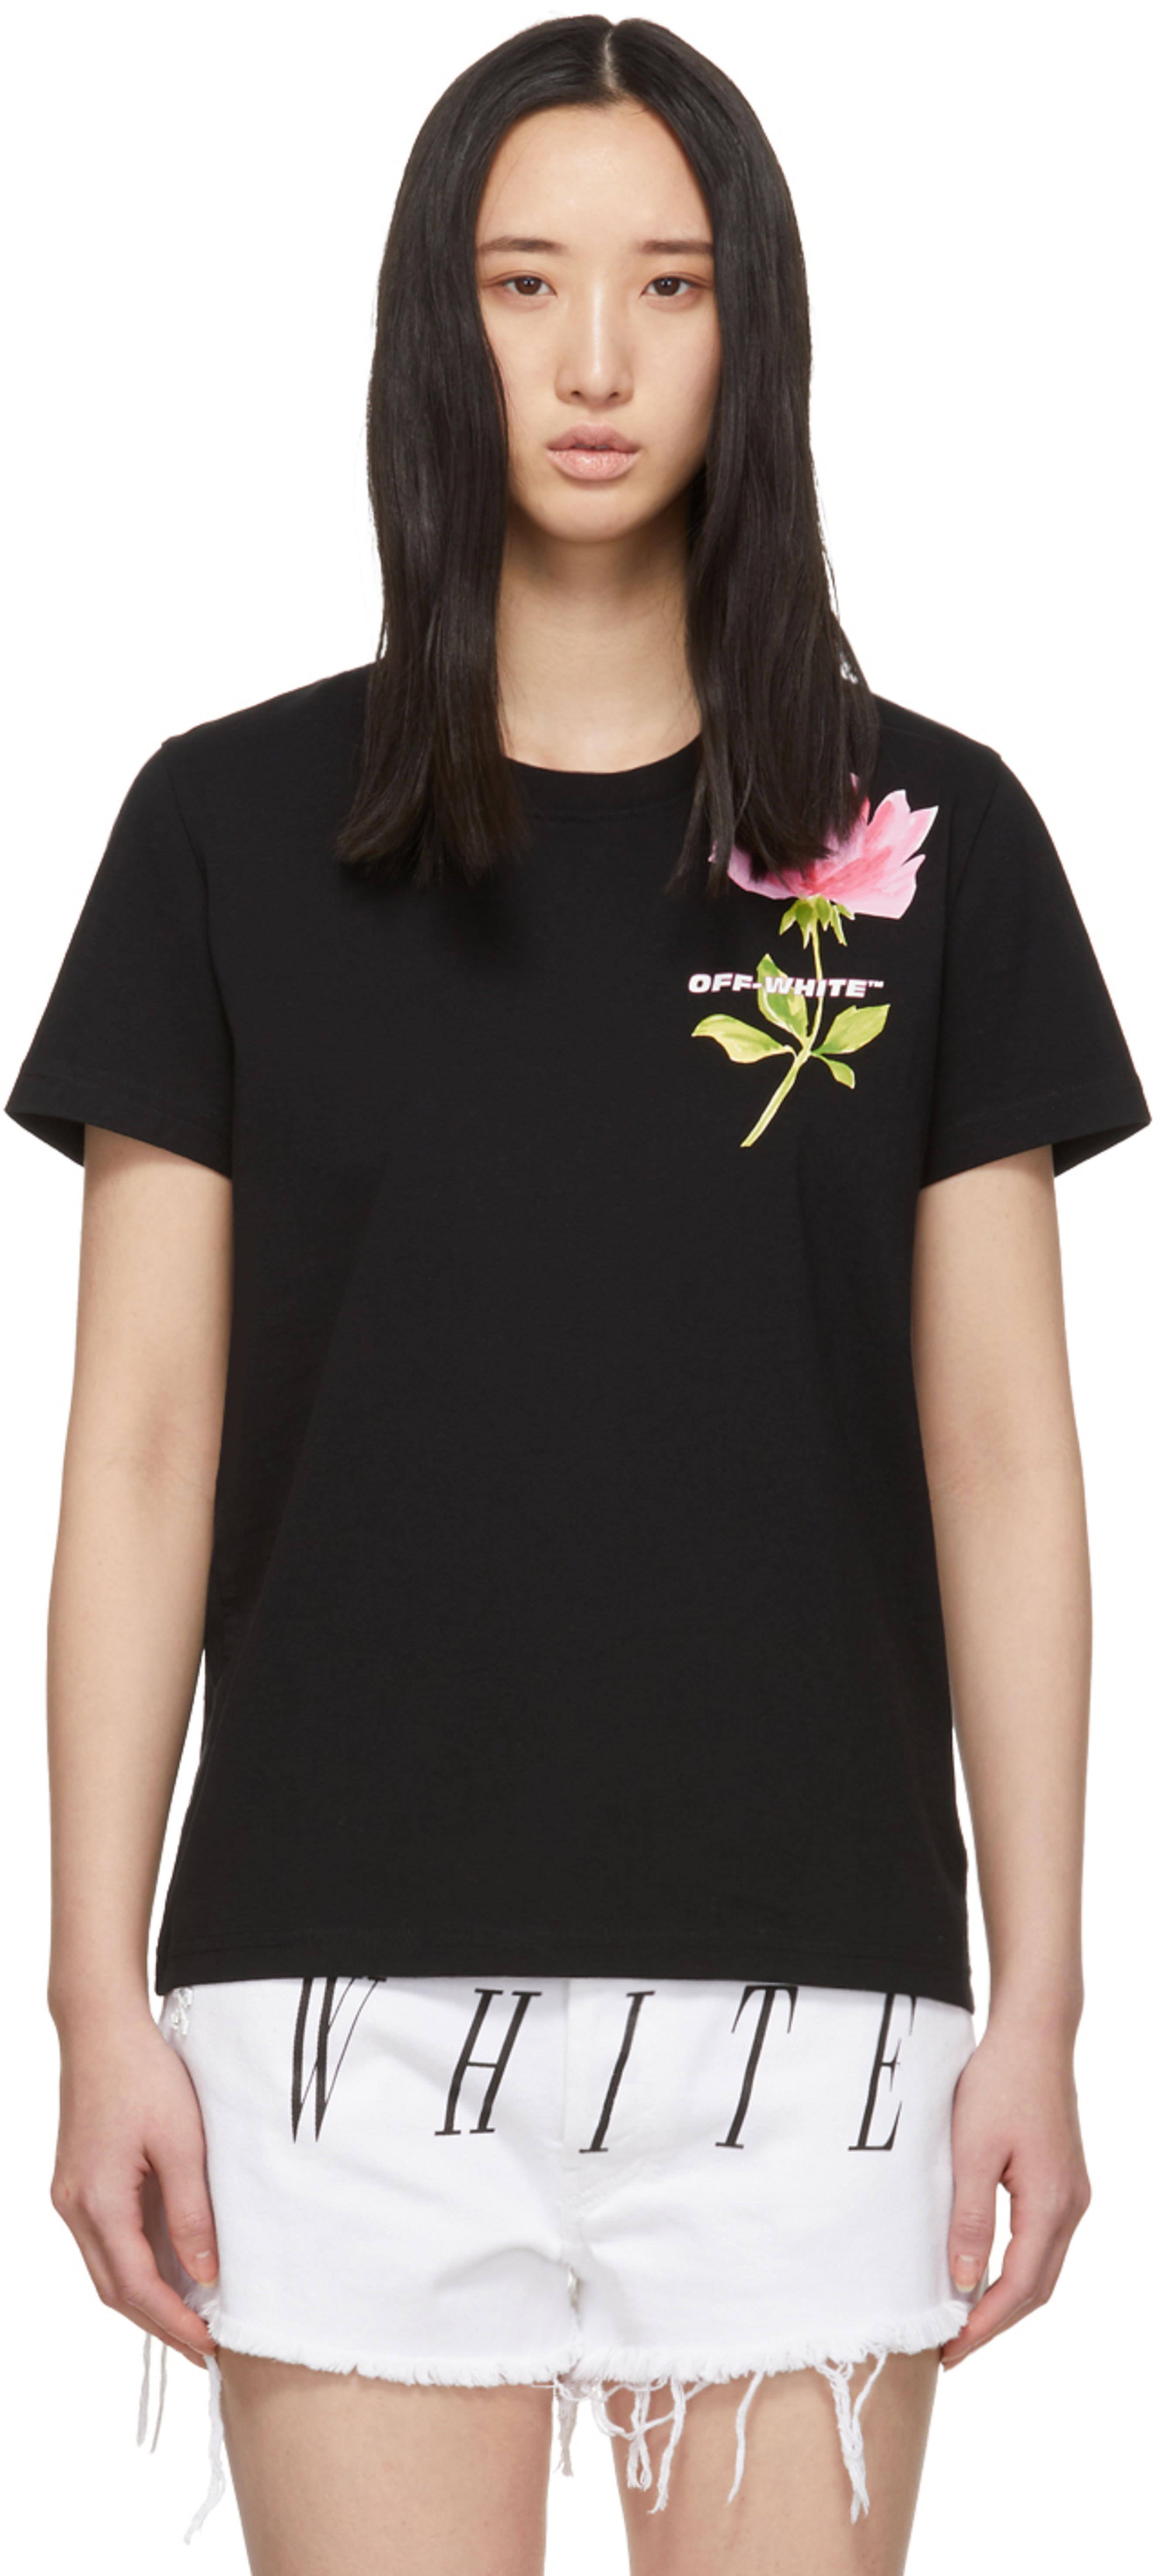 78250b898d4 Off-white t-shirts for Women